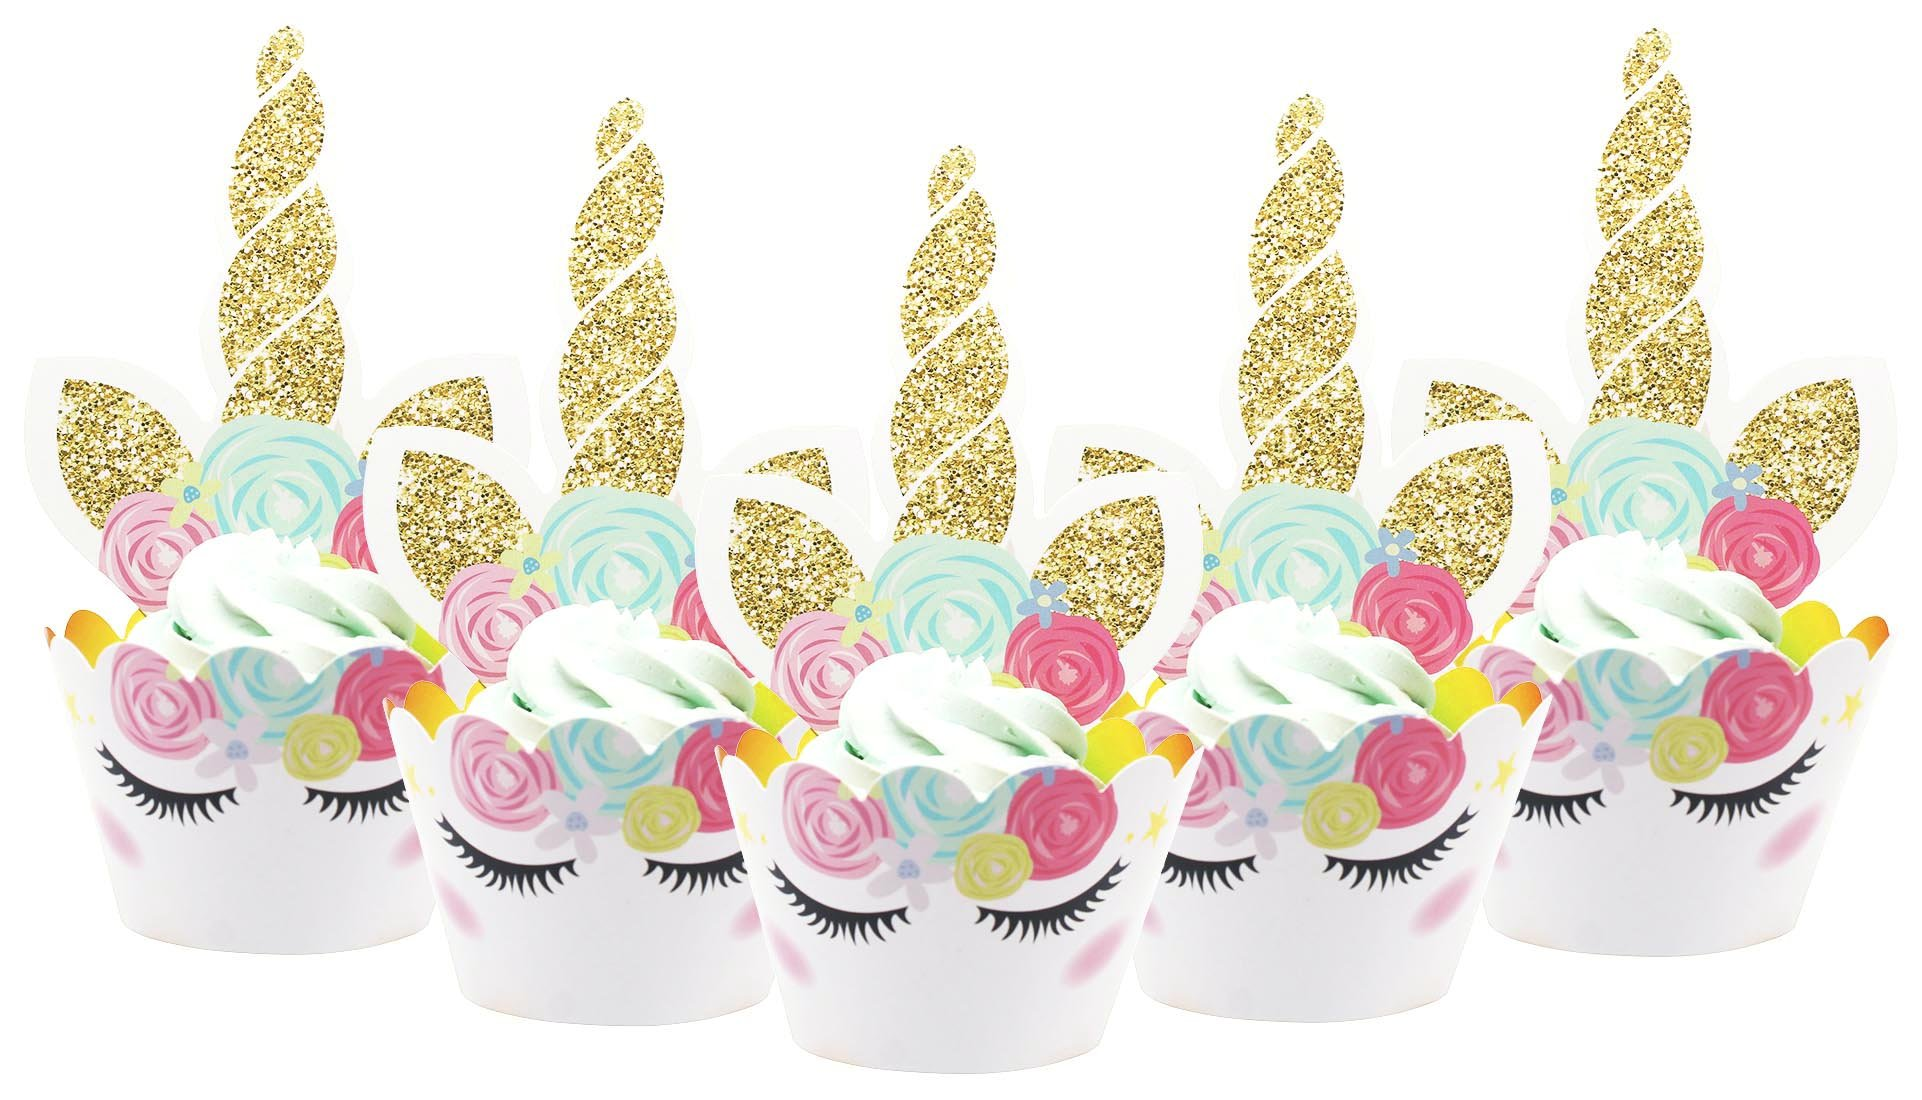 Zealax Unicorn Cupcake Toppers Wrappers Kit Cake Decoration for Kids Themed Birthday Party Supplies Baby Shower, Set of 36